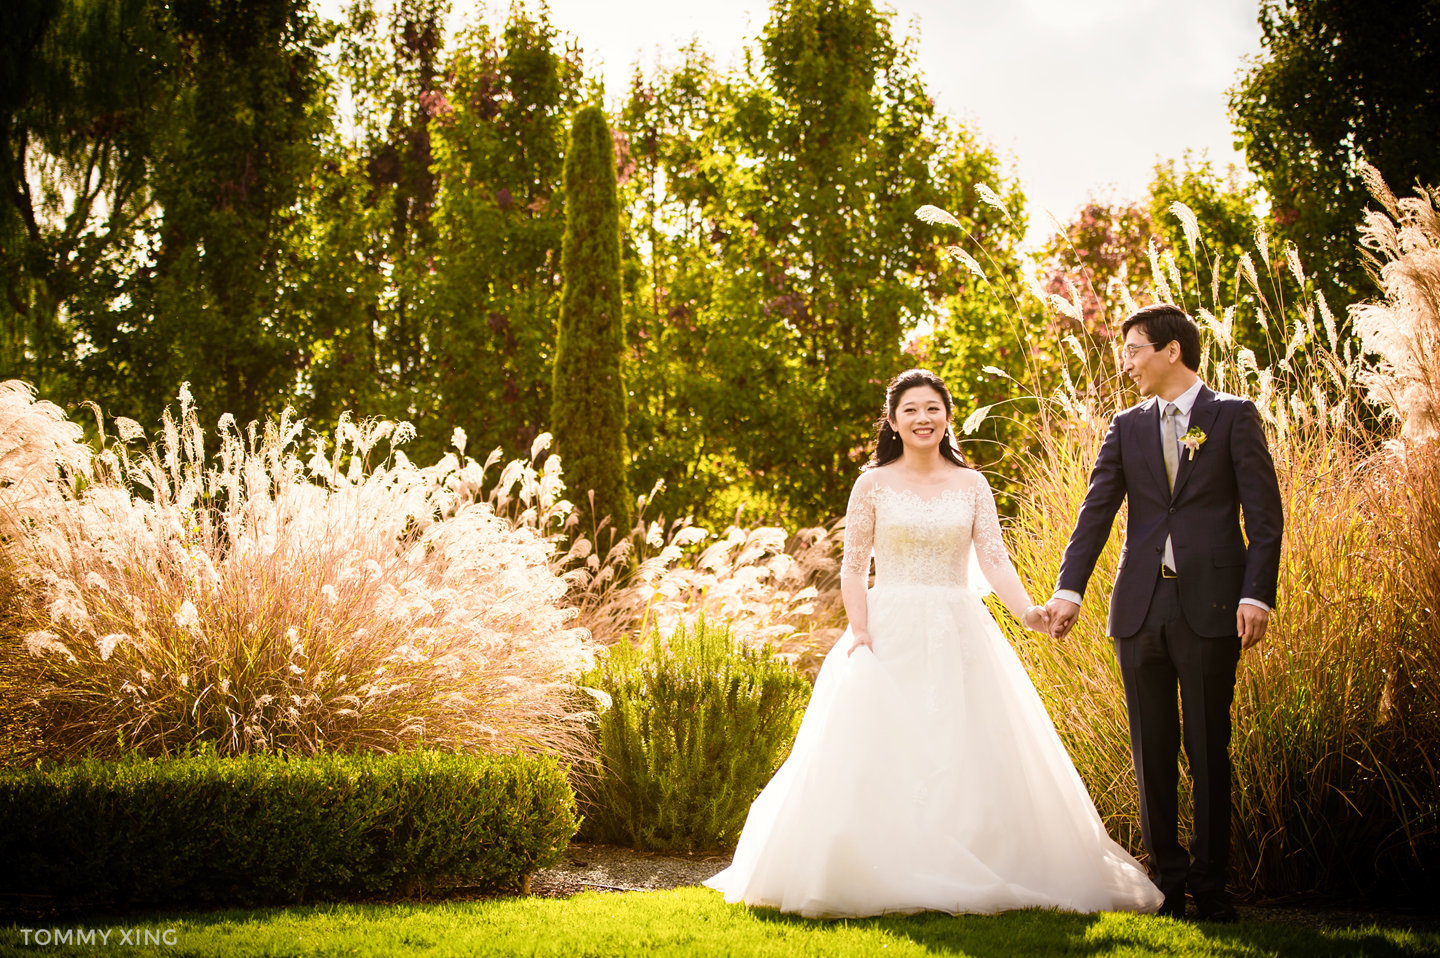 San Francisco Wedding Photography Valley Presbyterian Church WEDDING Tommy Xing Photography 洛杉矶旧金山婚礼婚纱照摄影师040.jpg